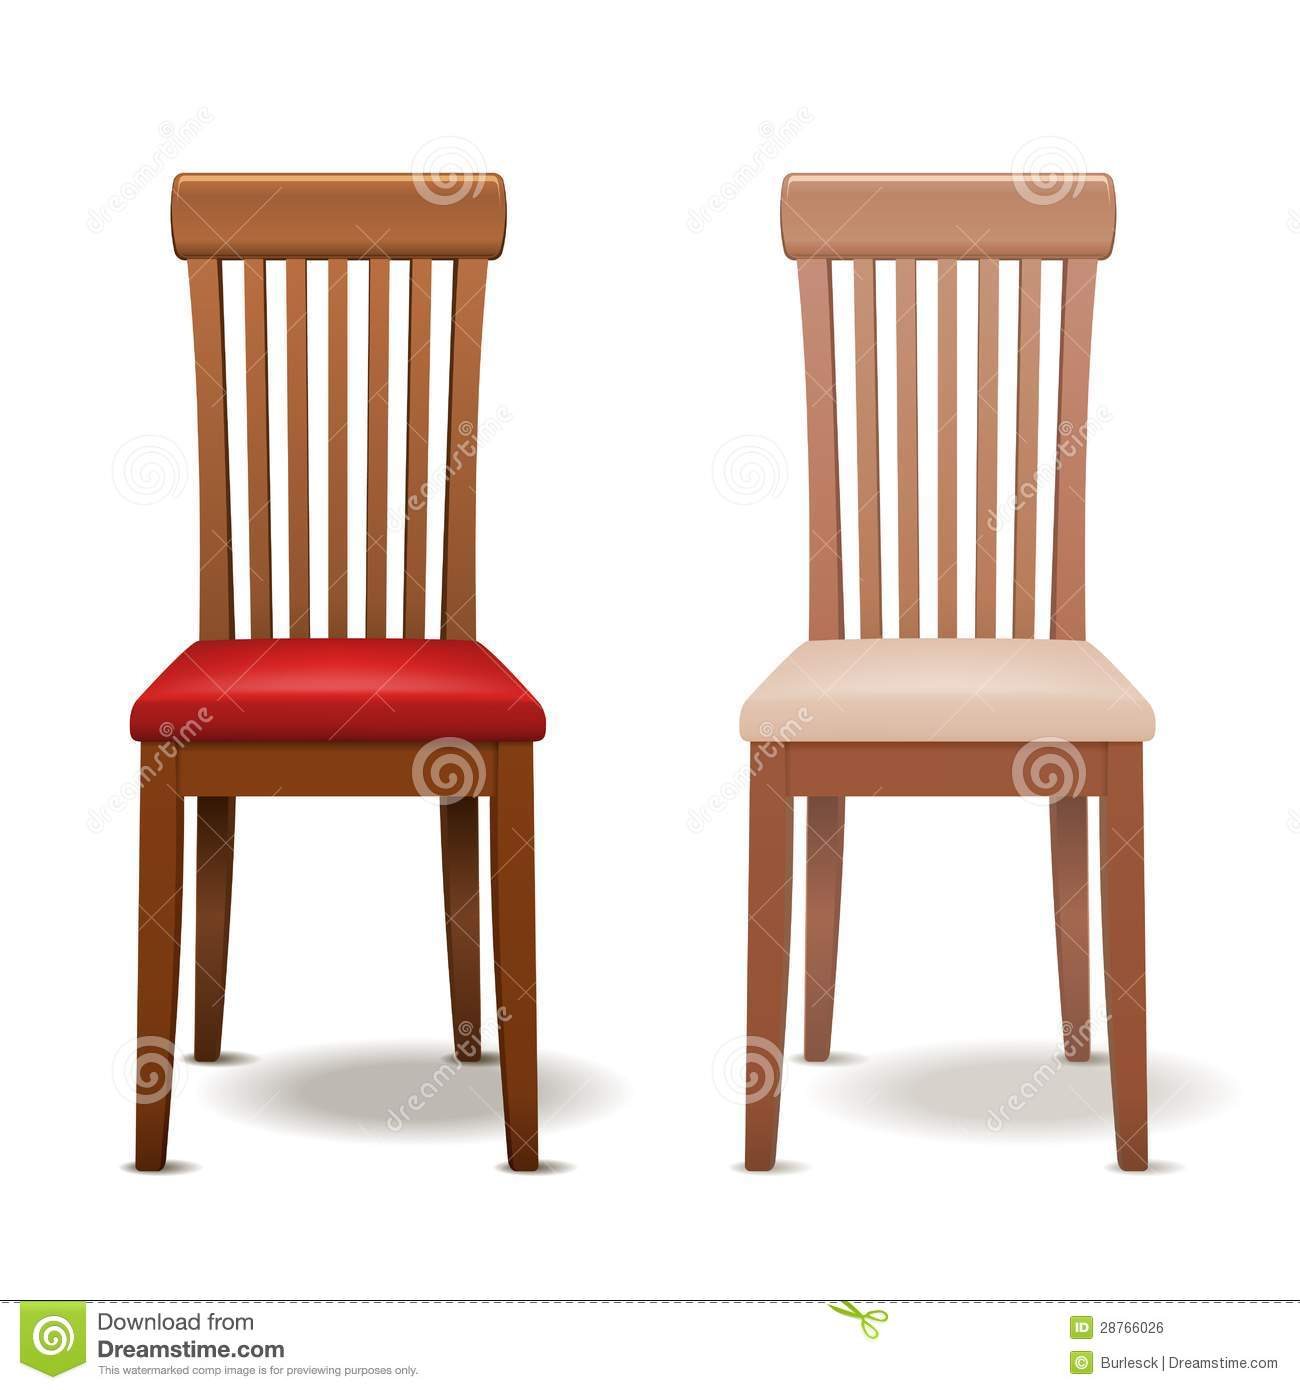 office chair vector rocking chairs for children royalty free stock image 28766026